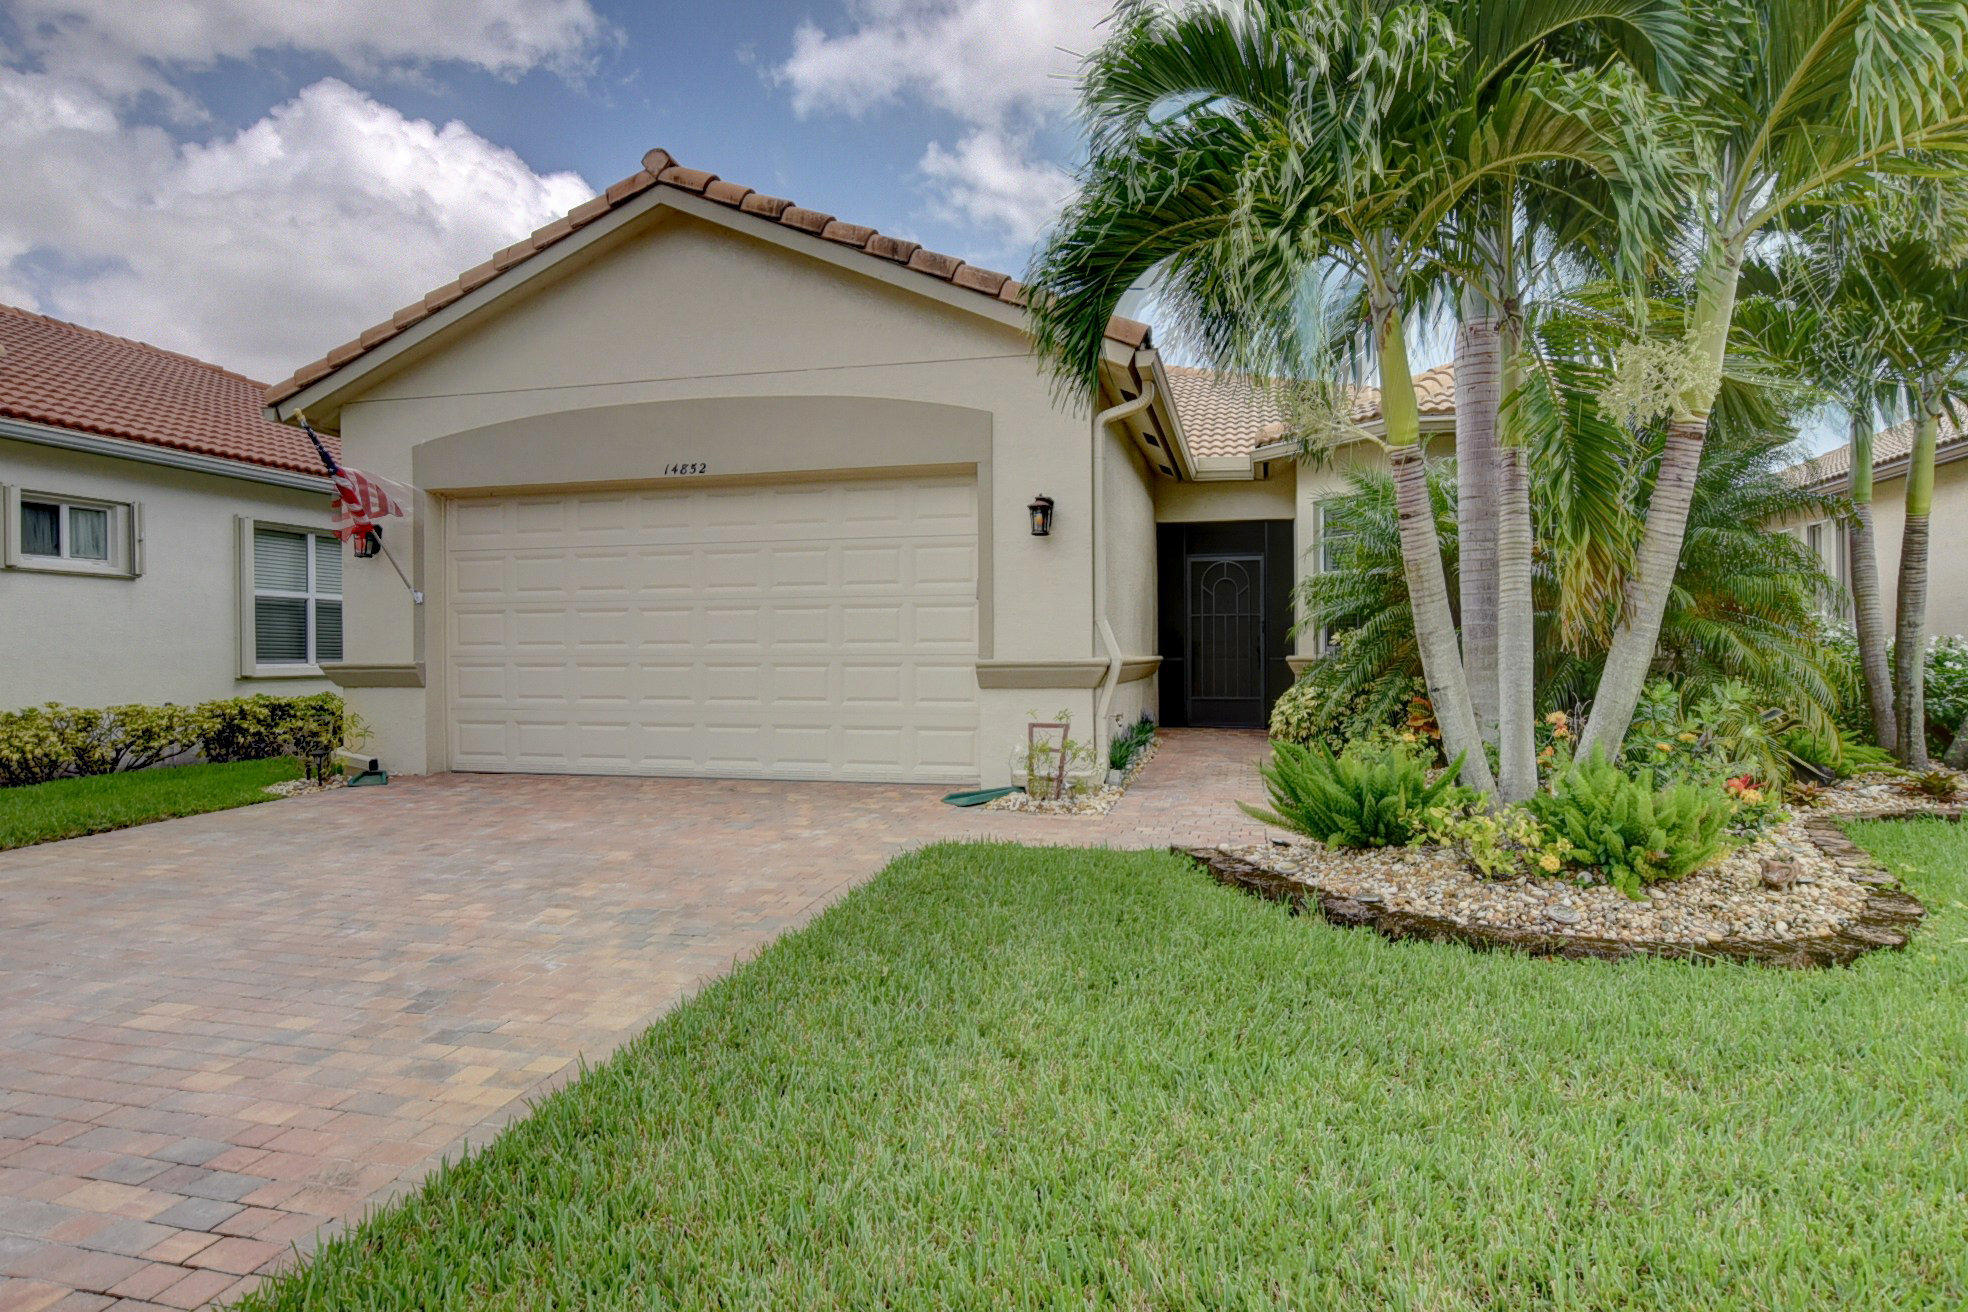 Home for sale in Four Seasons Delray Beach Florida